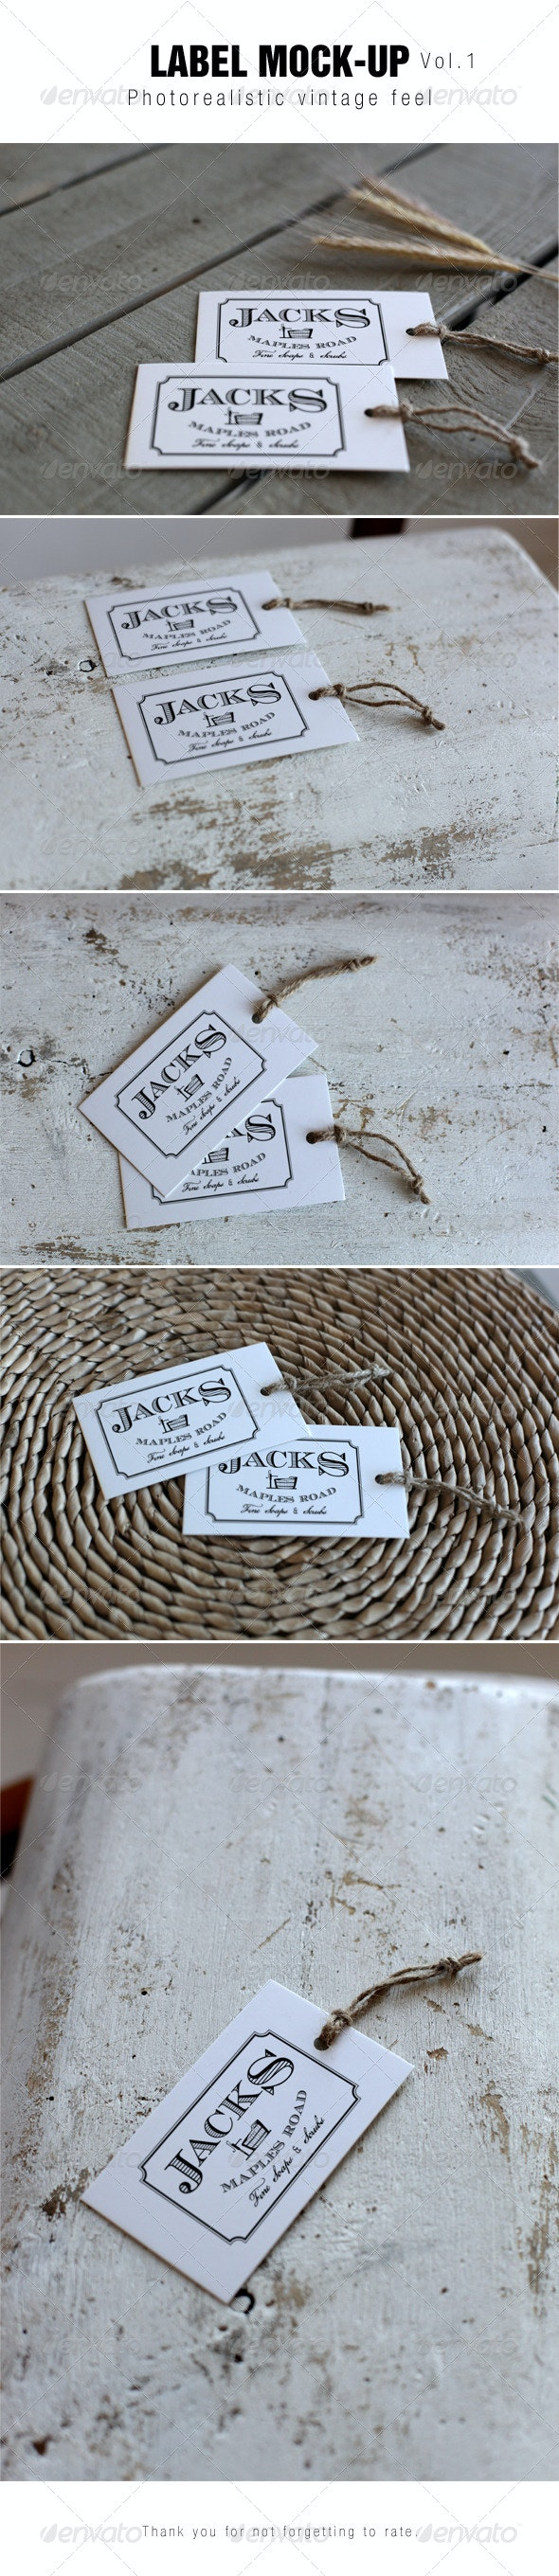 Label Mockup - Miscellaneous Packaging